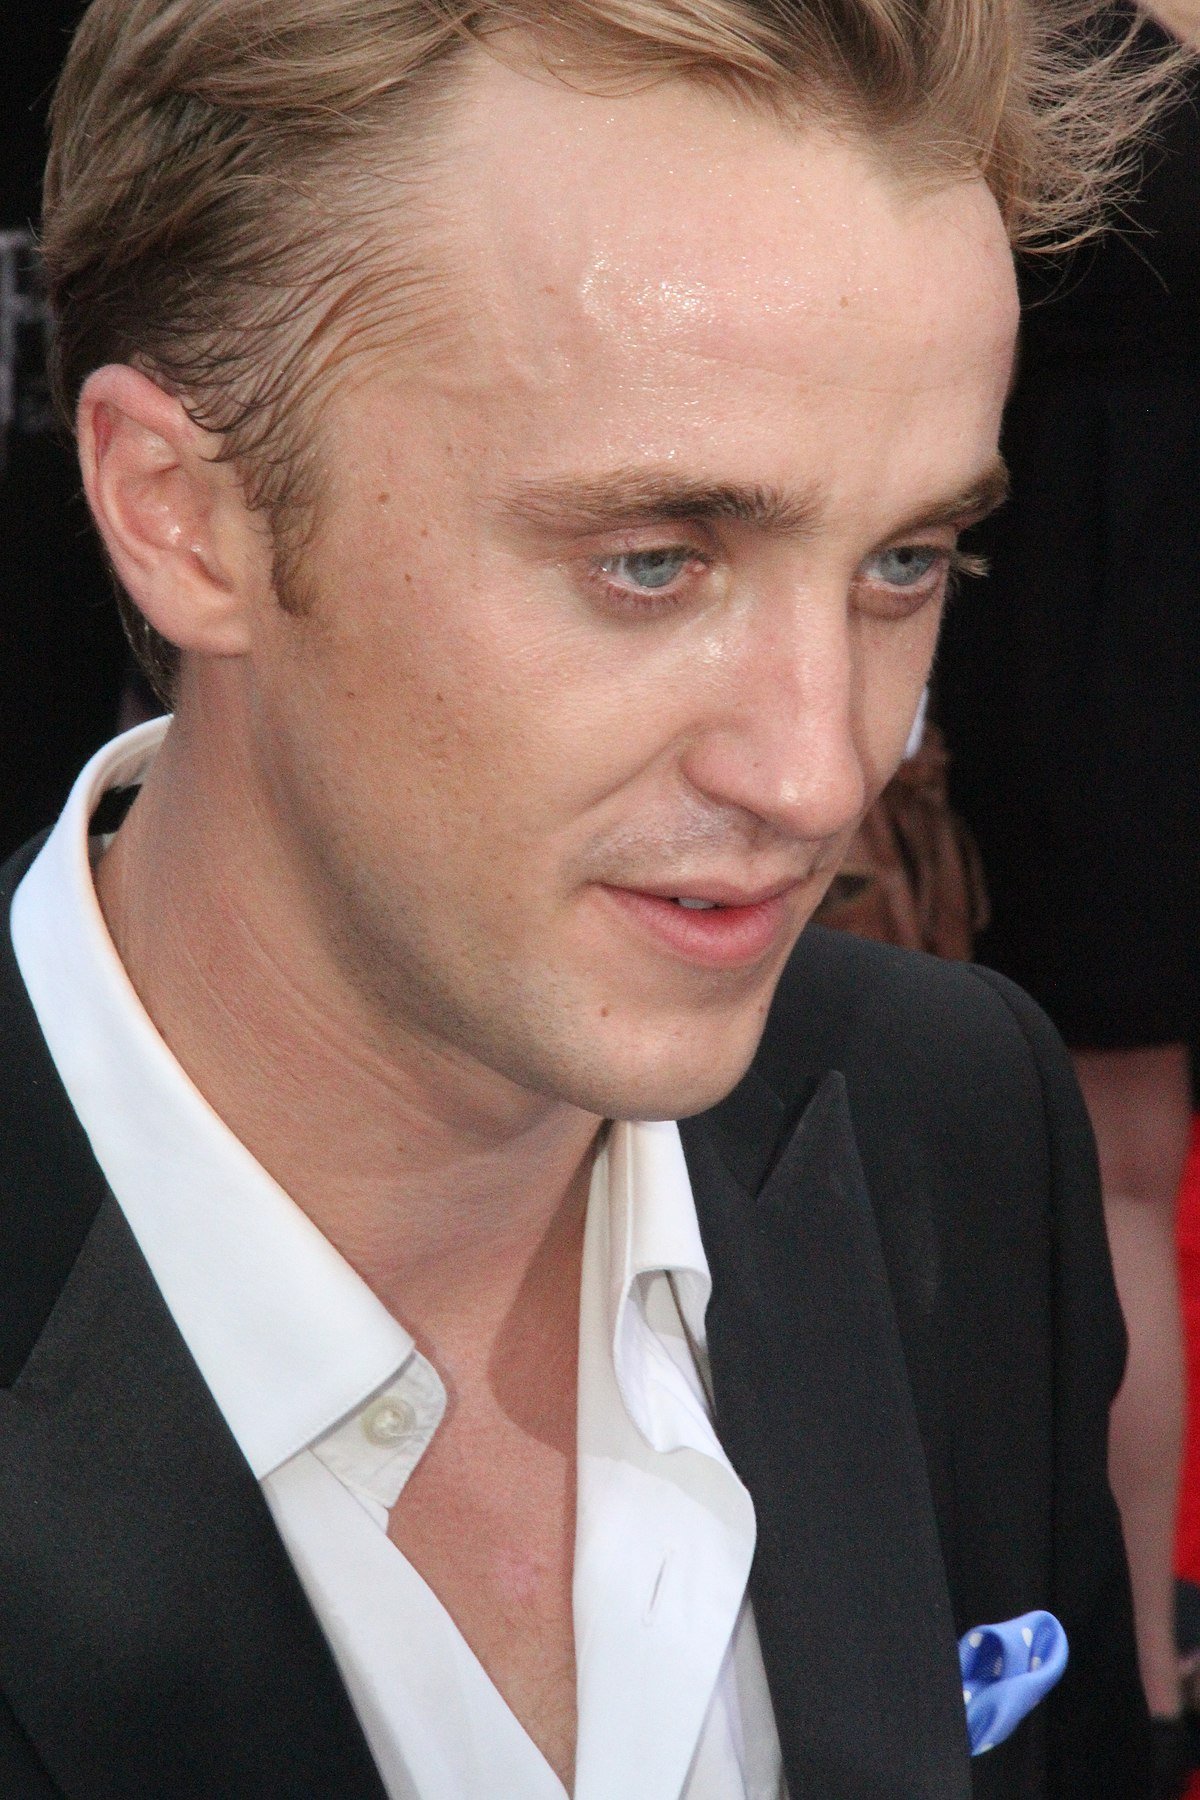 Tom Felton Wikipedia In 2012, josh prenot began his freshman year at the university of california berkeley. tom felton wikipedia